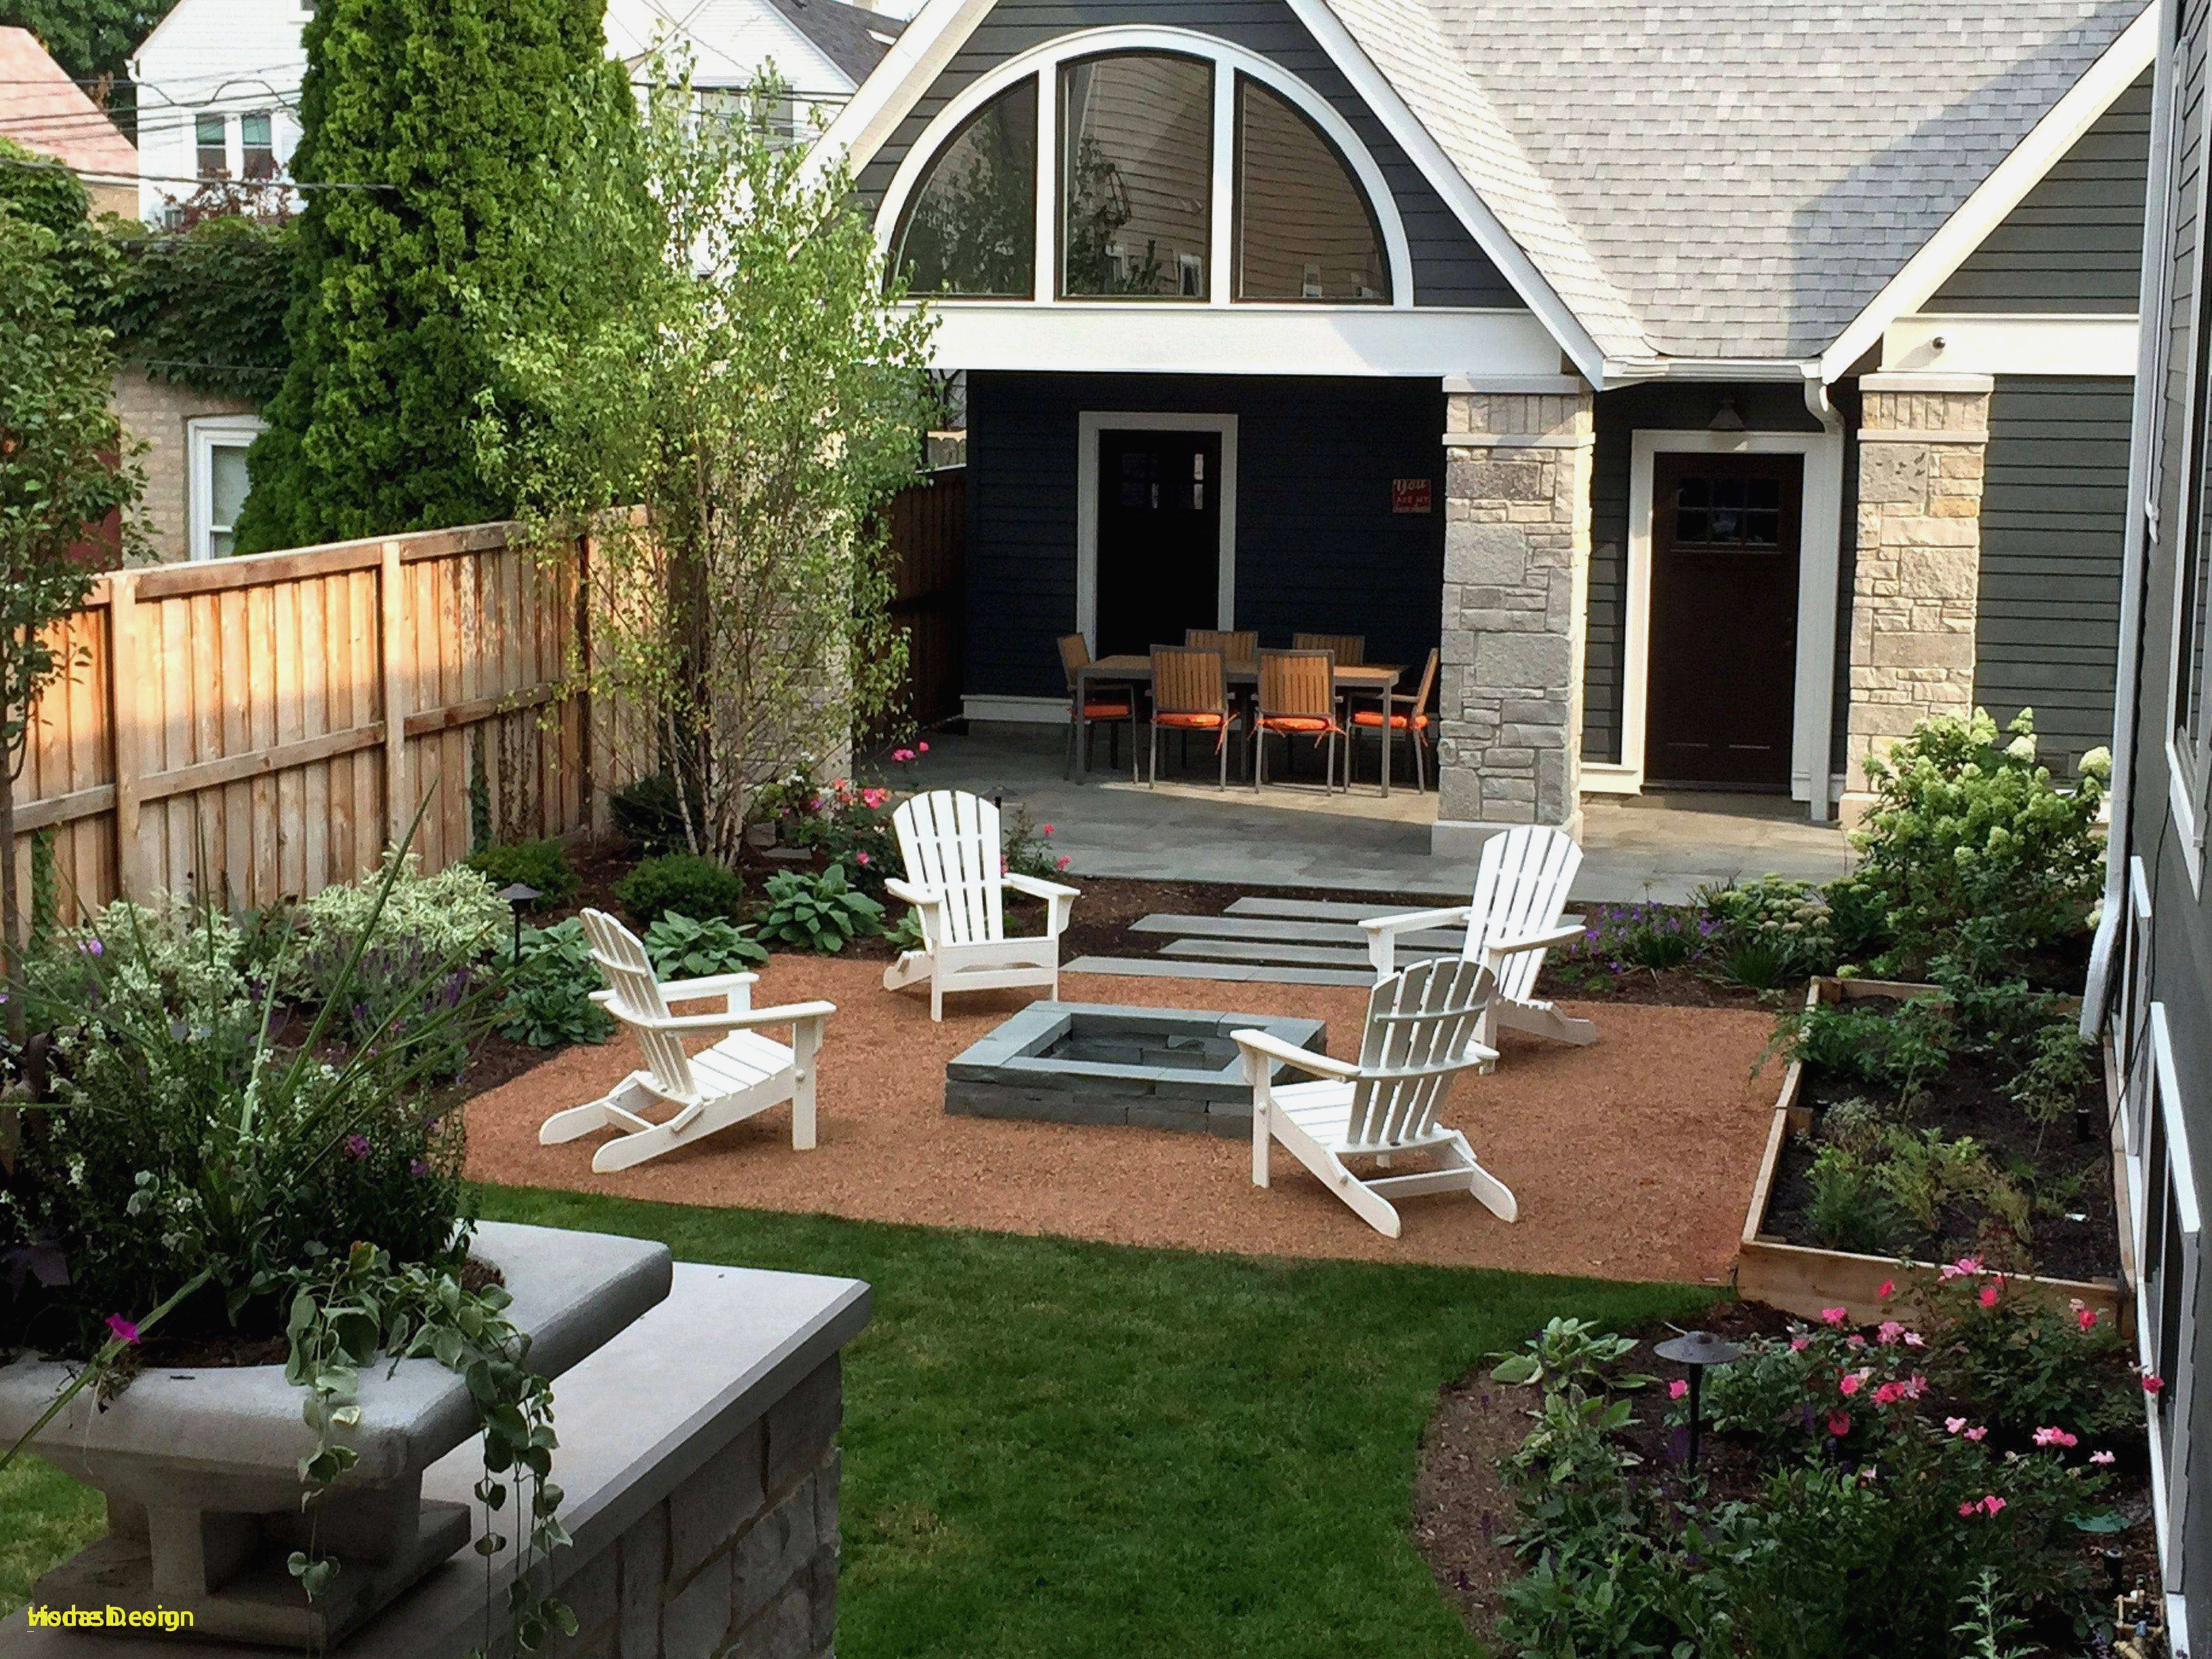 New Backyard Garage Ideas Images Home Design Unique At Design Tips with 12 Smart Designs of How to Improve Backyard Garage Ideas